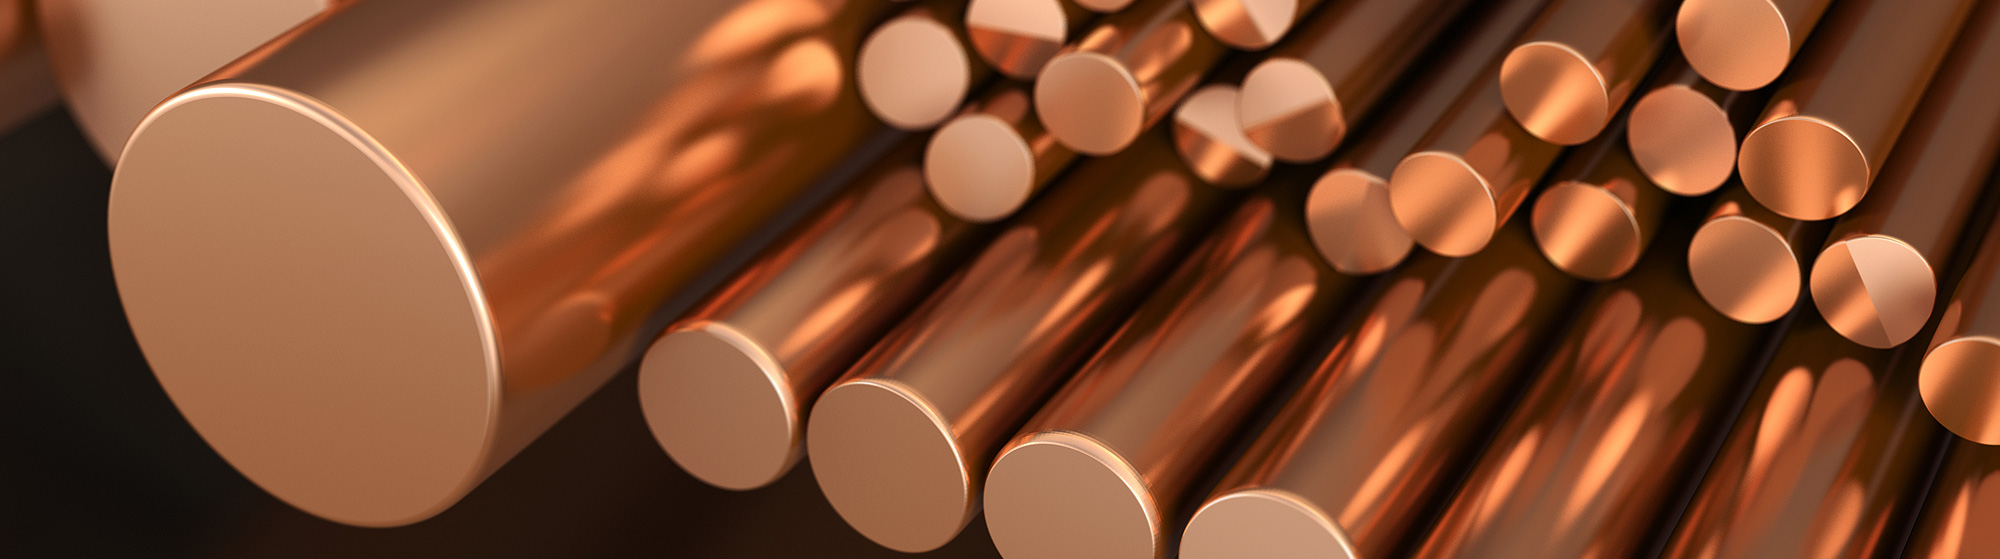 Copper Wave Analysis – 11 September, 2020